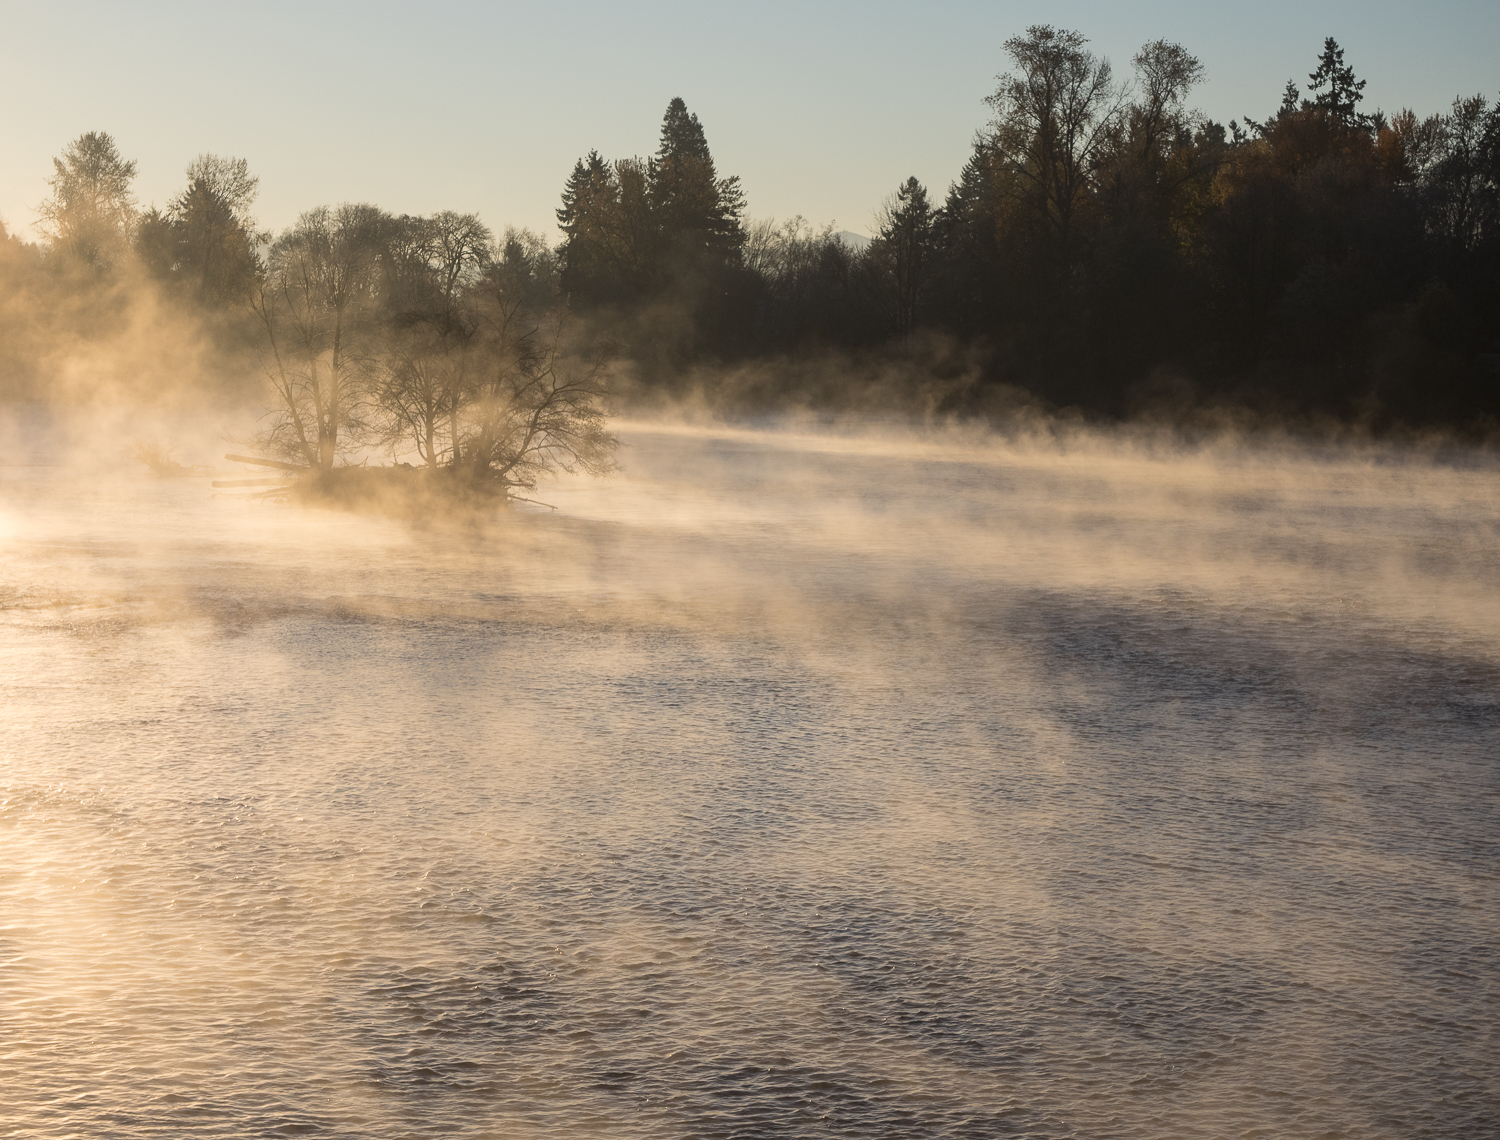 Cold Morning Mist on Willamette River